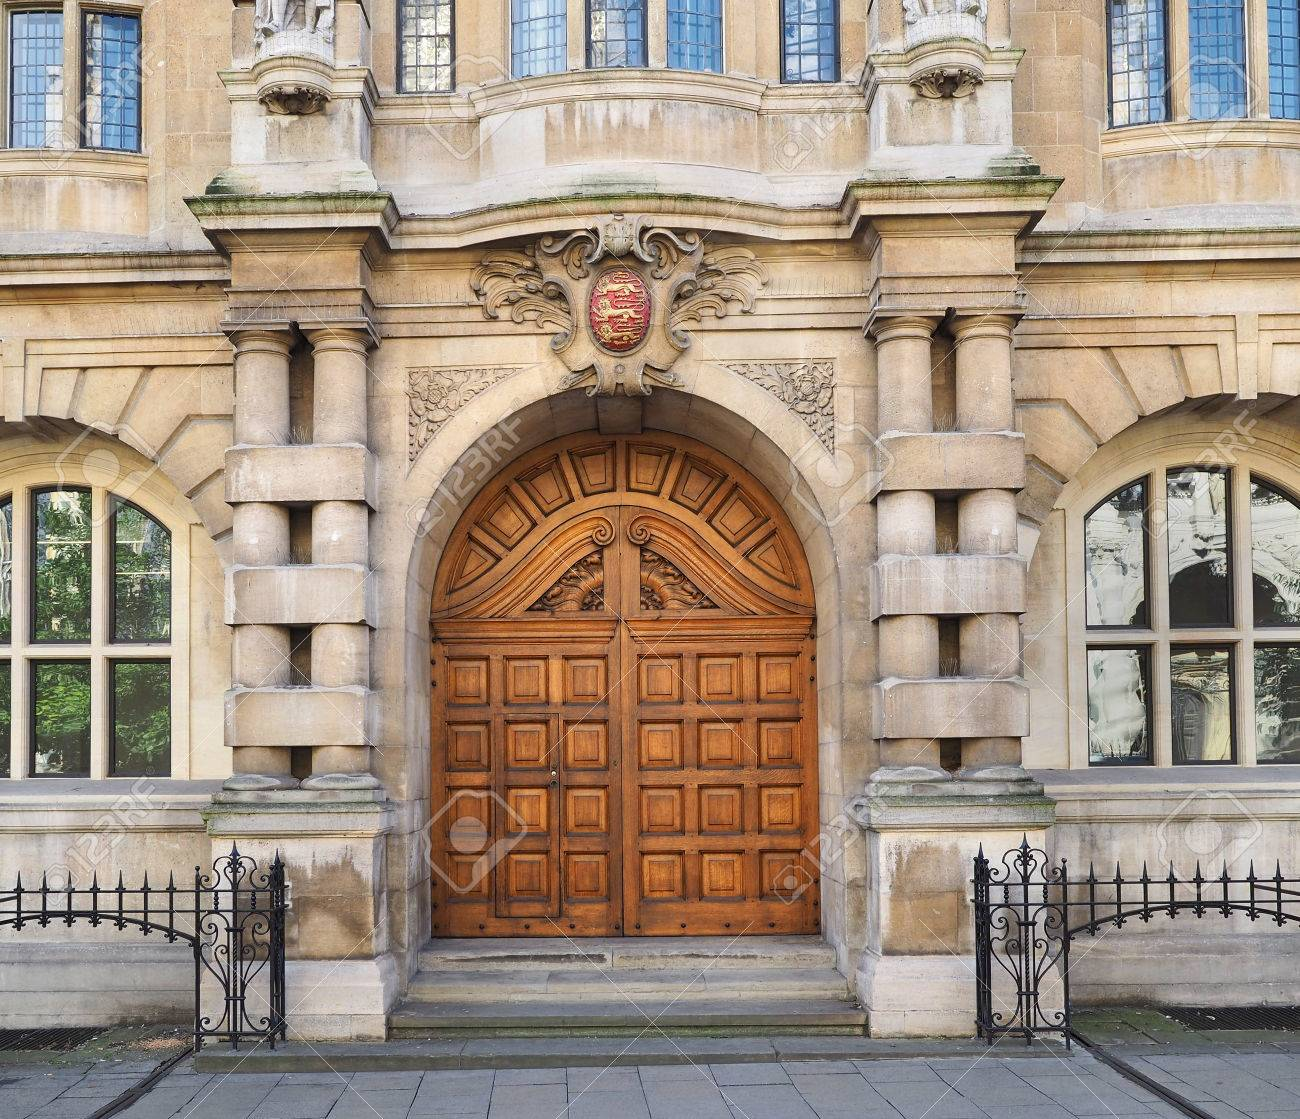 Oxford university old wooden doors Stock Photo - 64953104 & Oxford University Old Wooden Doors Stock Photo Picture And Royalty ...